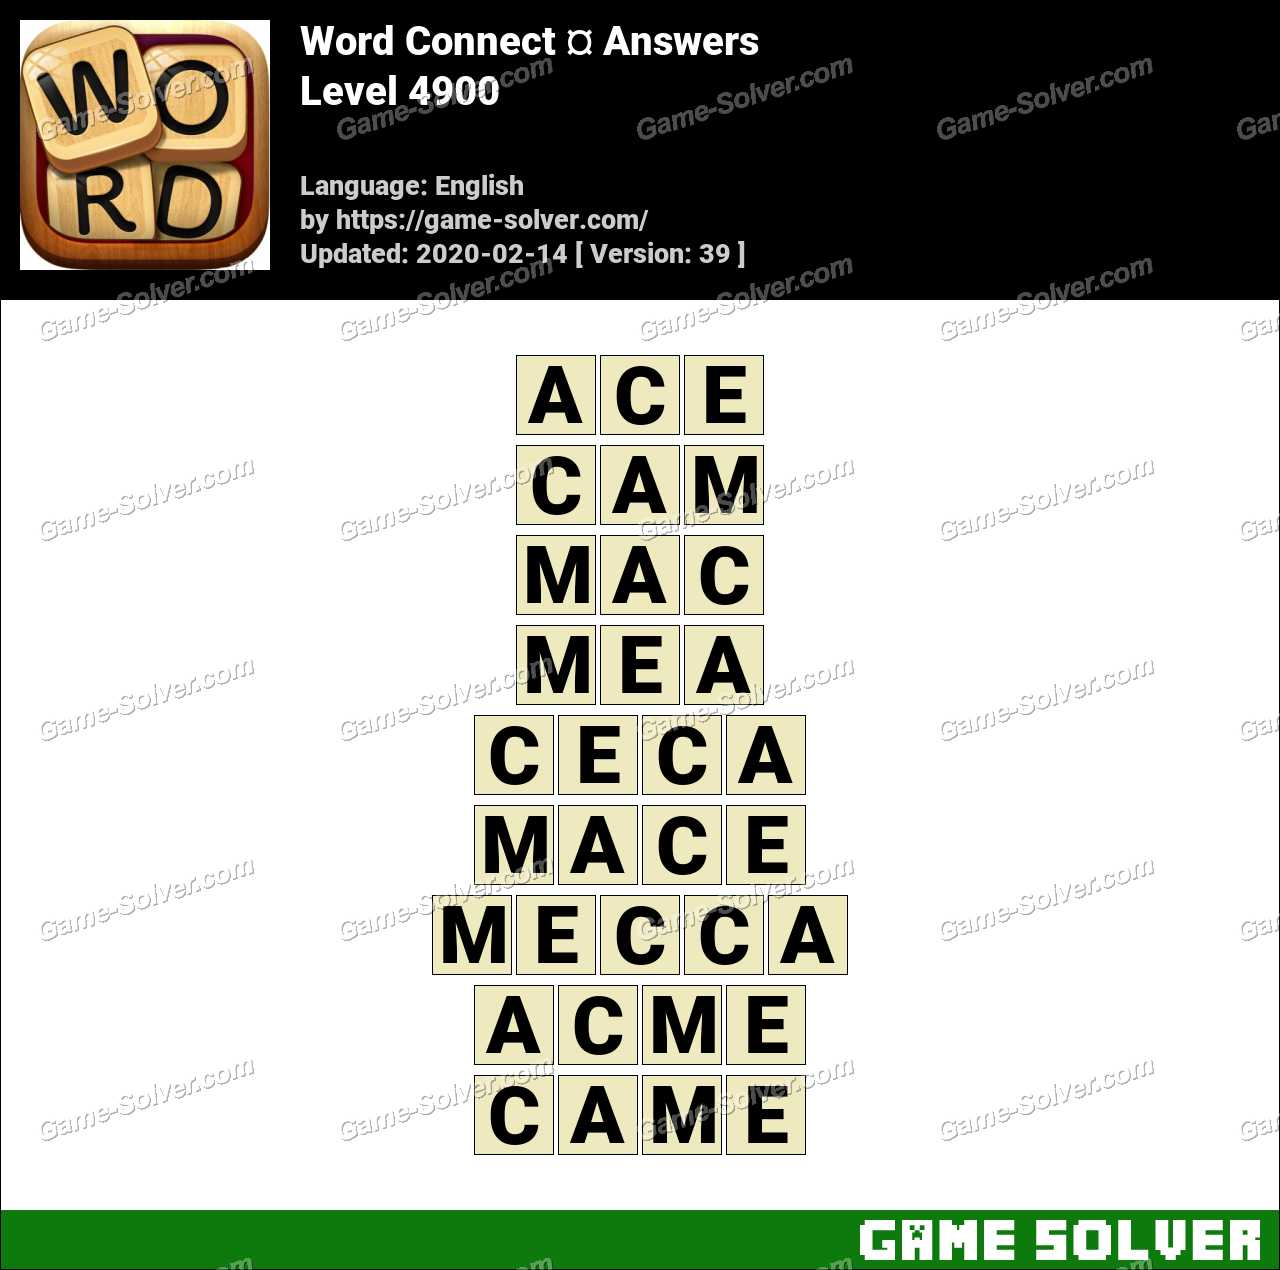 Word Connect Level 4900 Answers